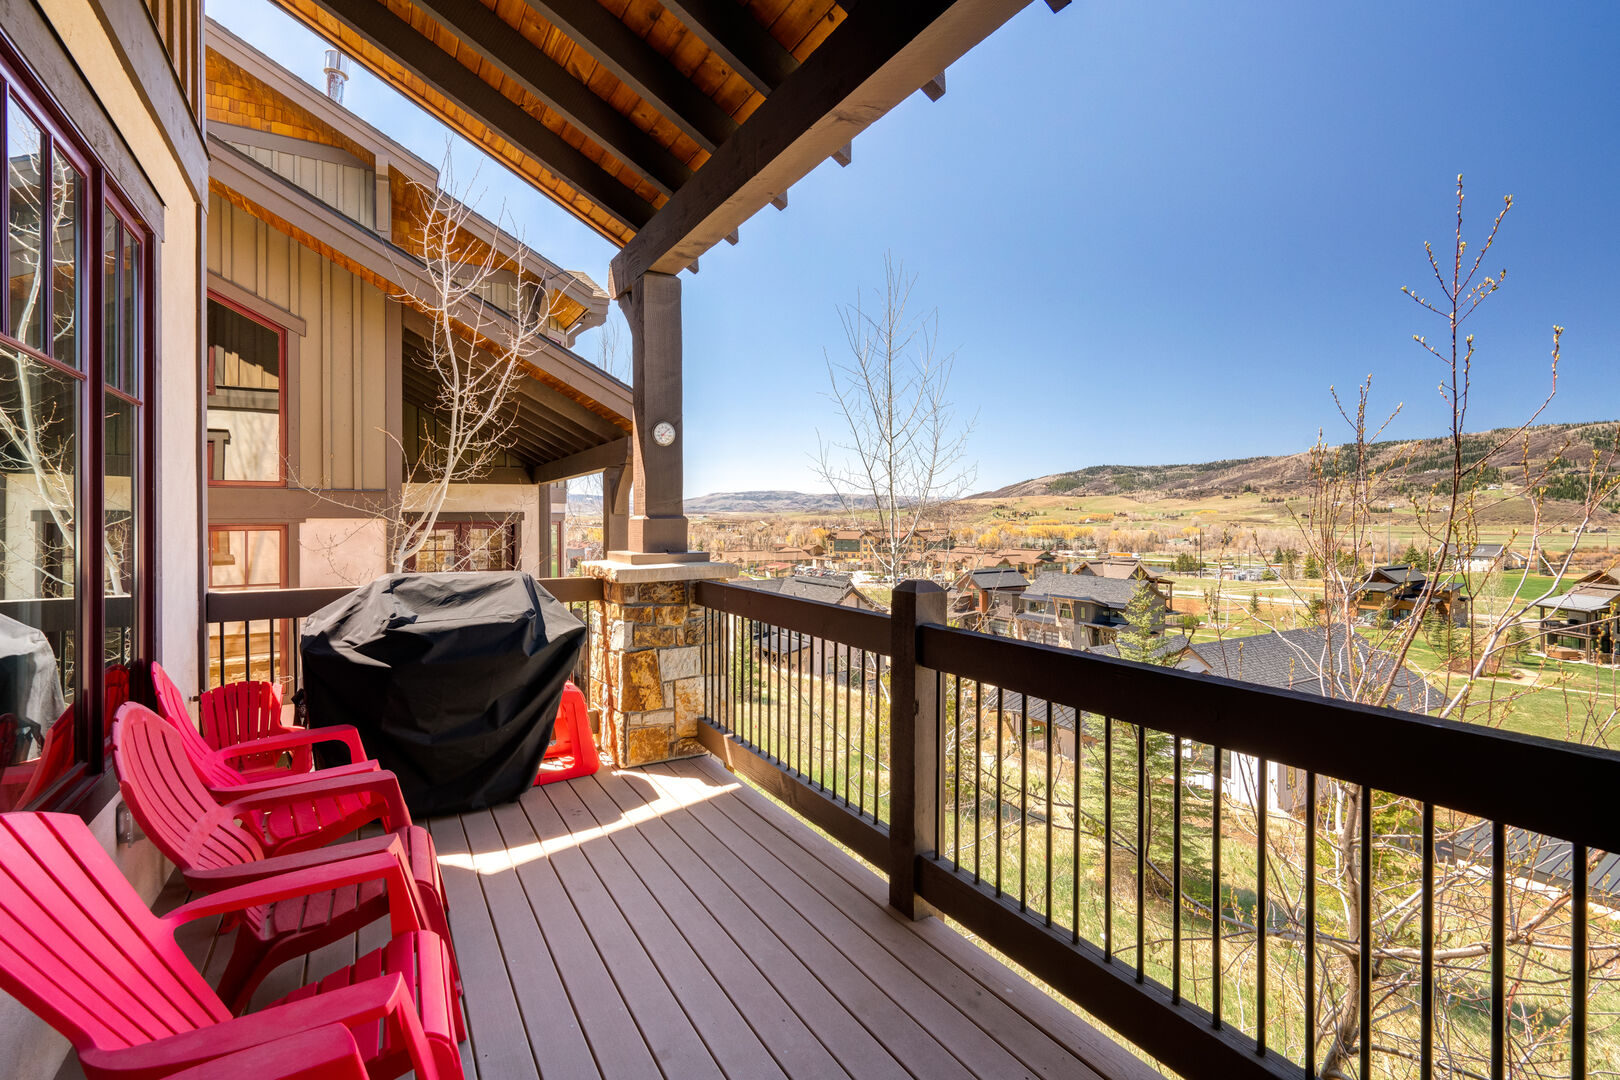 Main level deck with gas grill to cook up dinner!